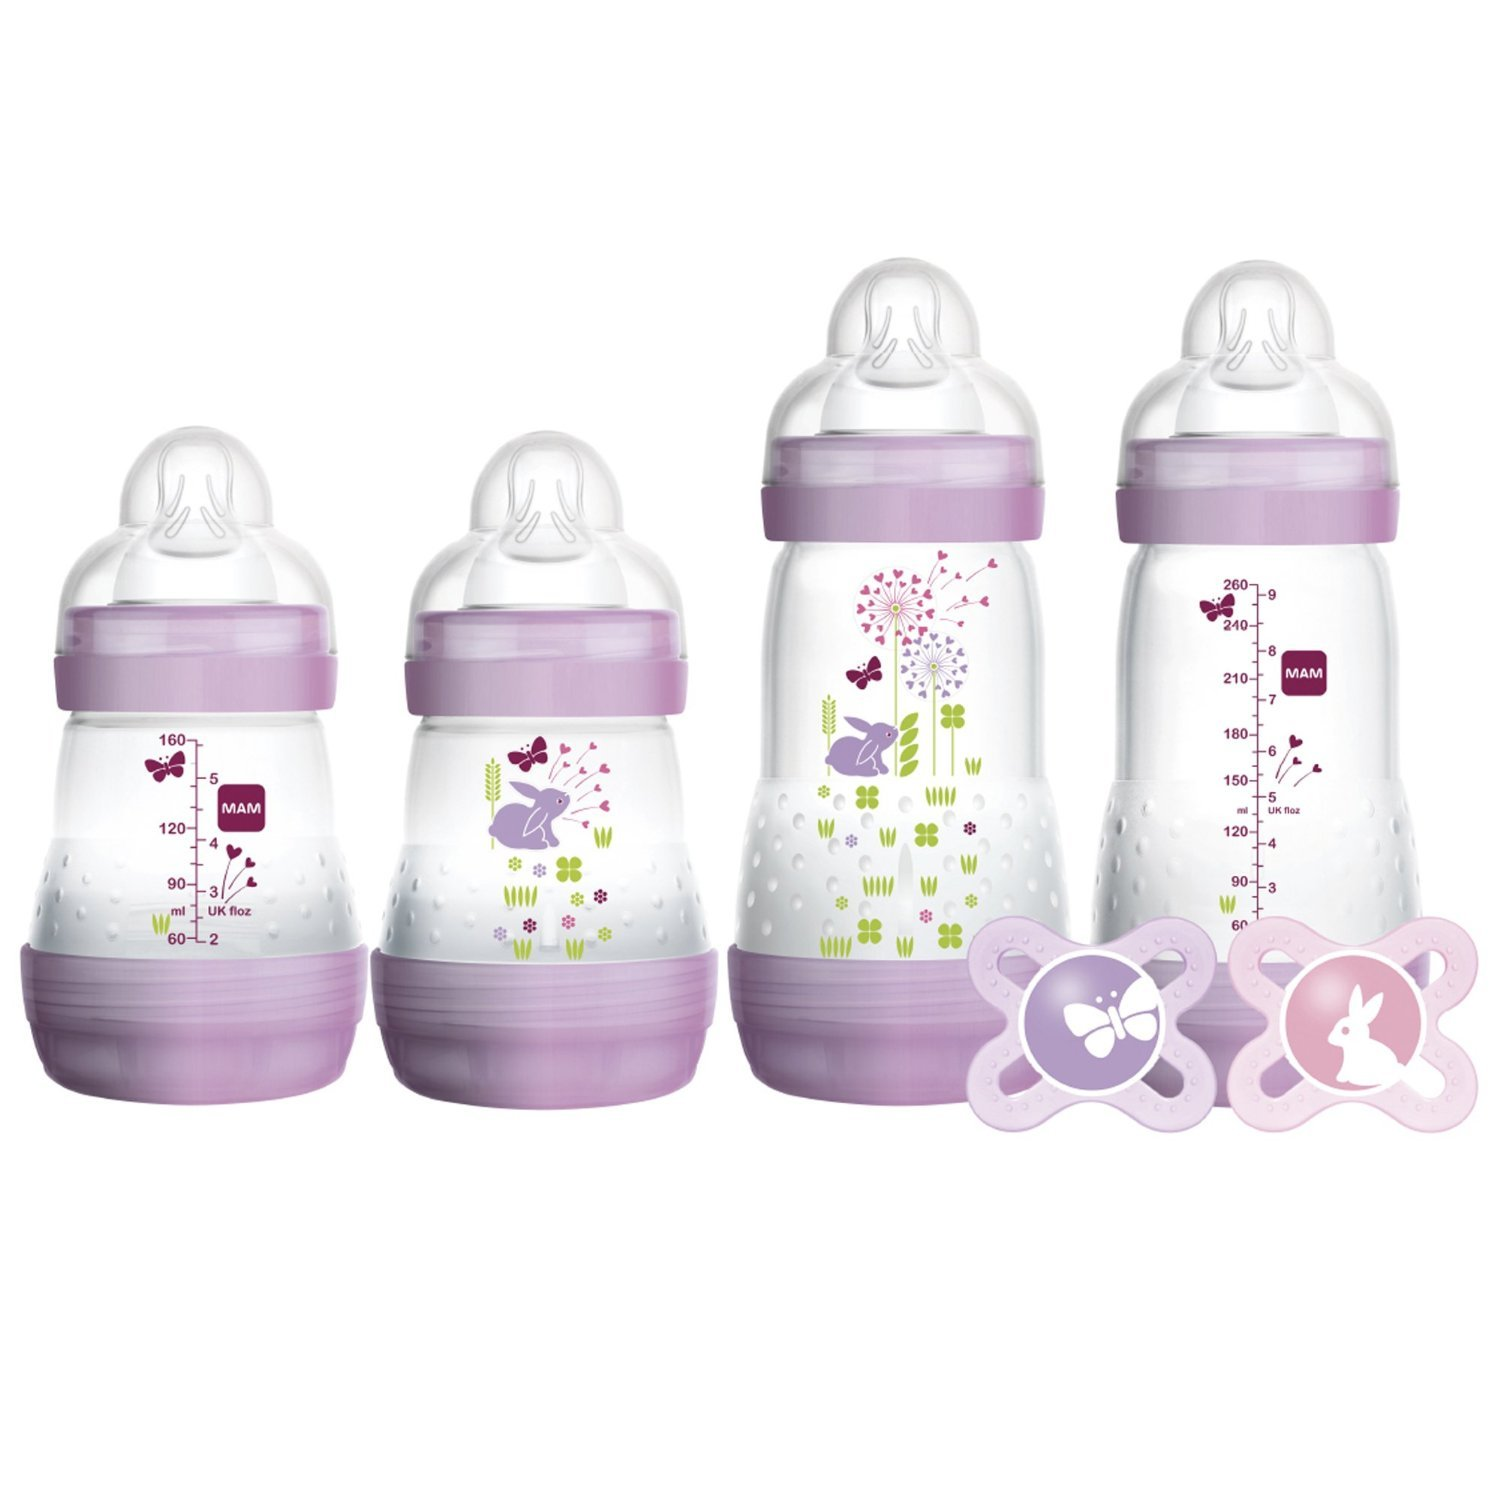 Amazon.com : BPA-Free, PVC-Free, Lead-Free & CPSIA-Compliant Soothe ...